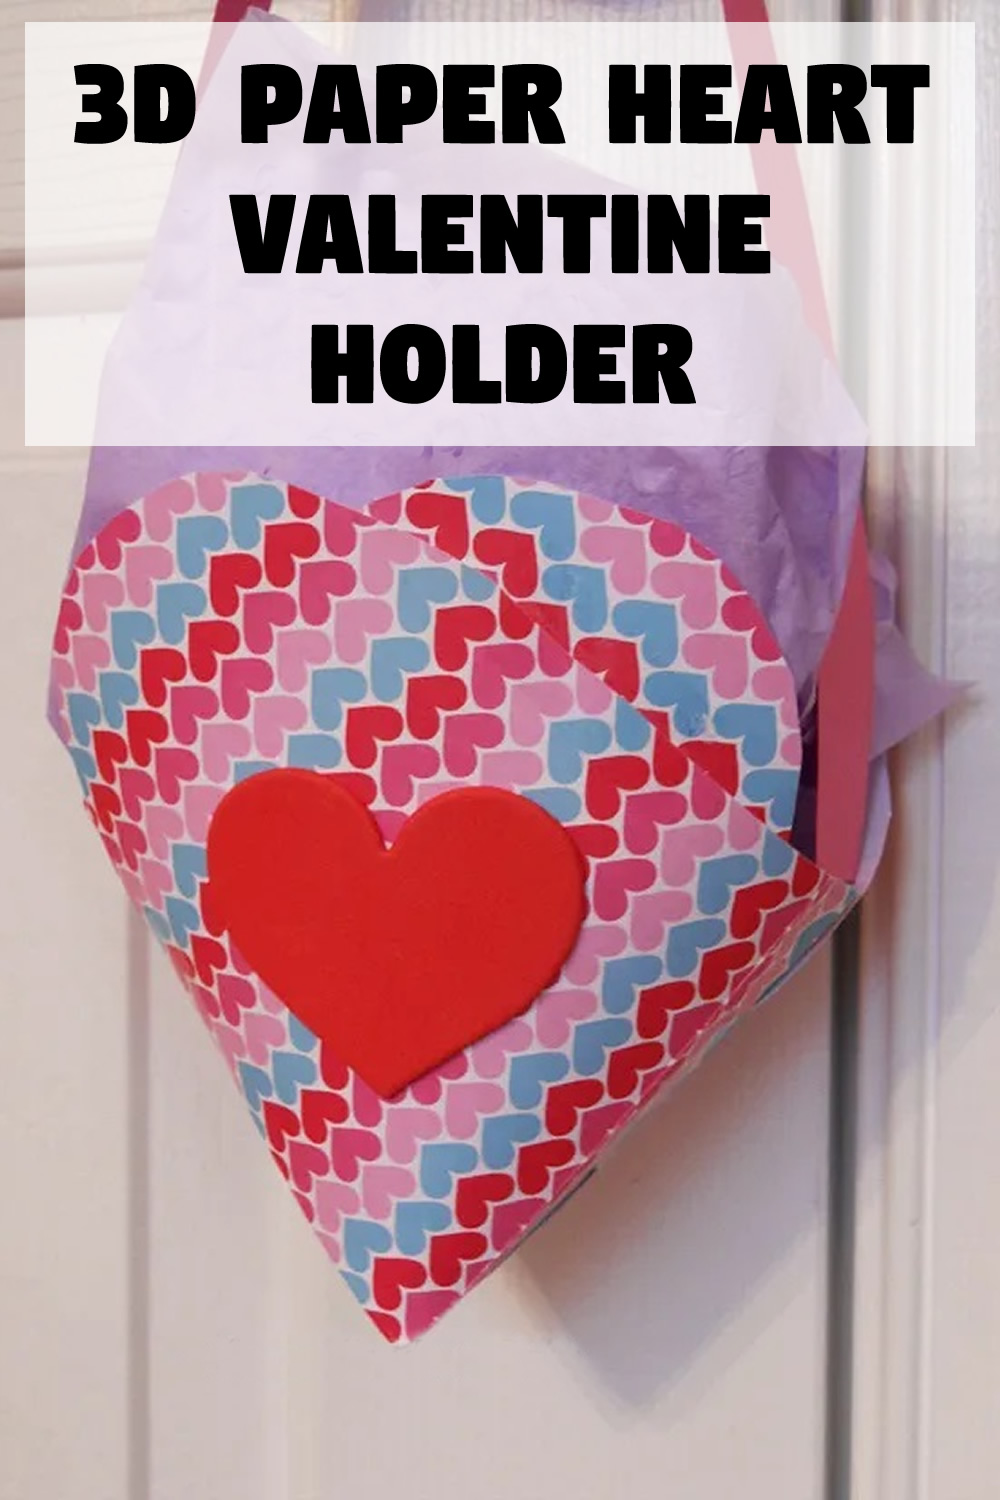 3D Paper Heart Valentine Holder